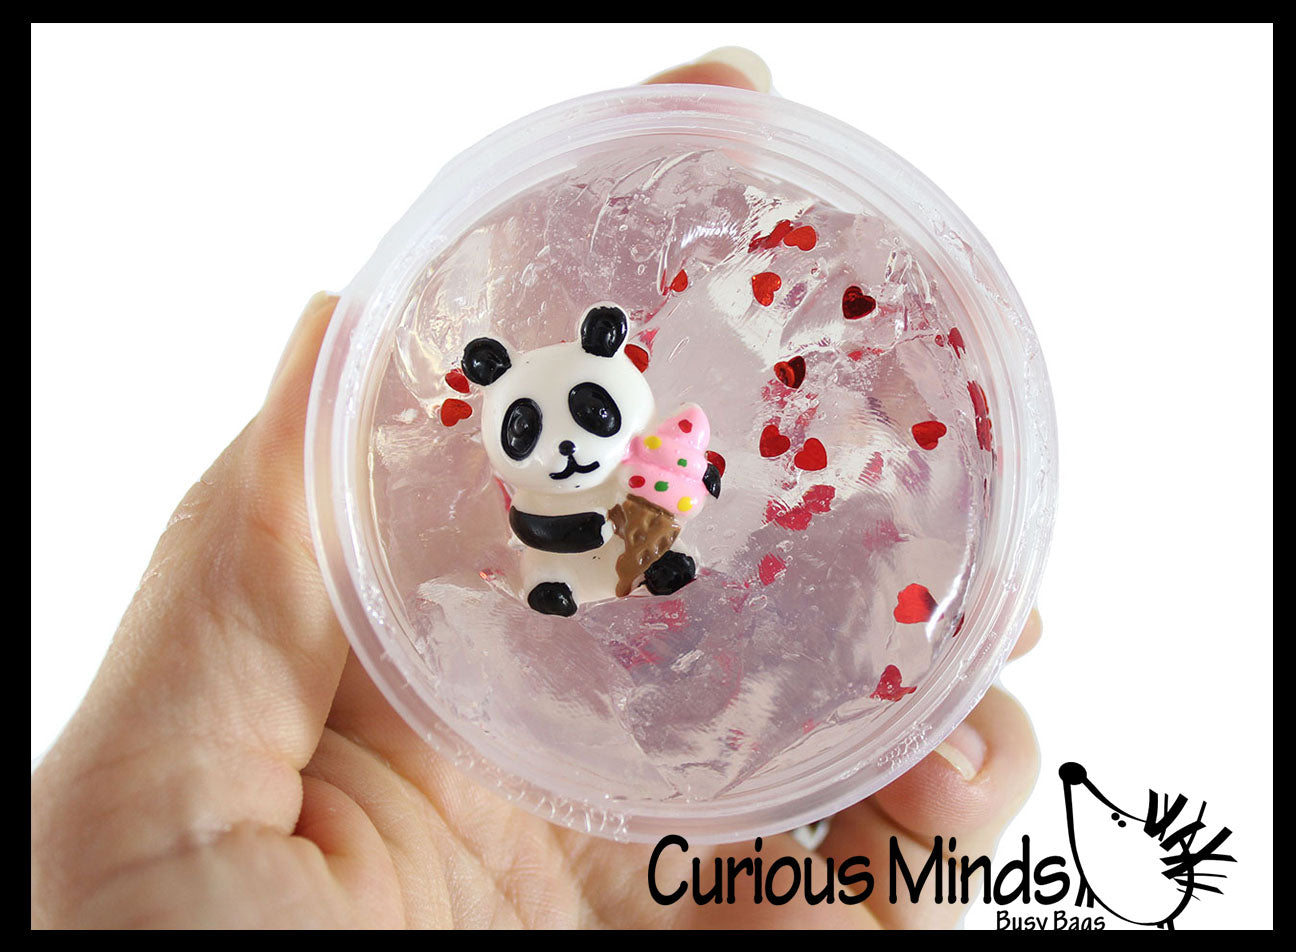 Panda Putty - Thick Clear Slime with Panda Figurine  - Container - Putty - Goo - Heart Sprinkle